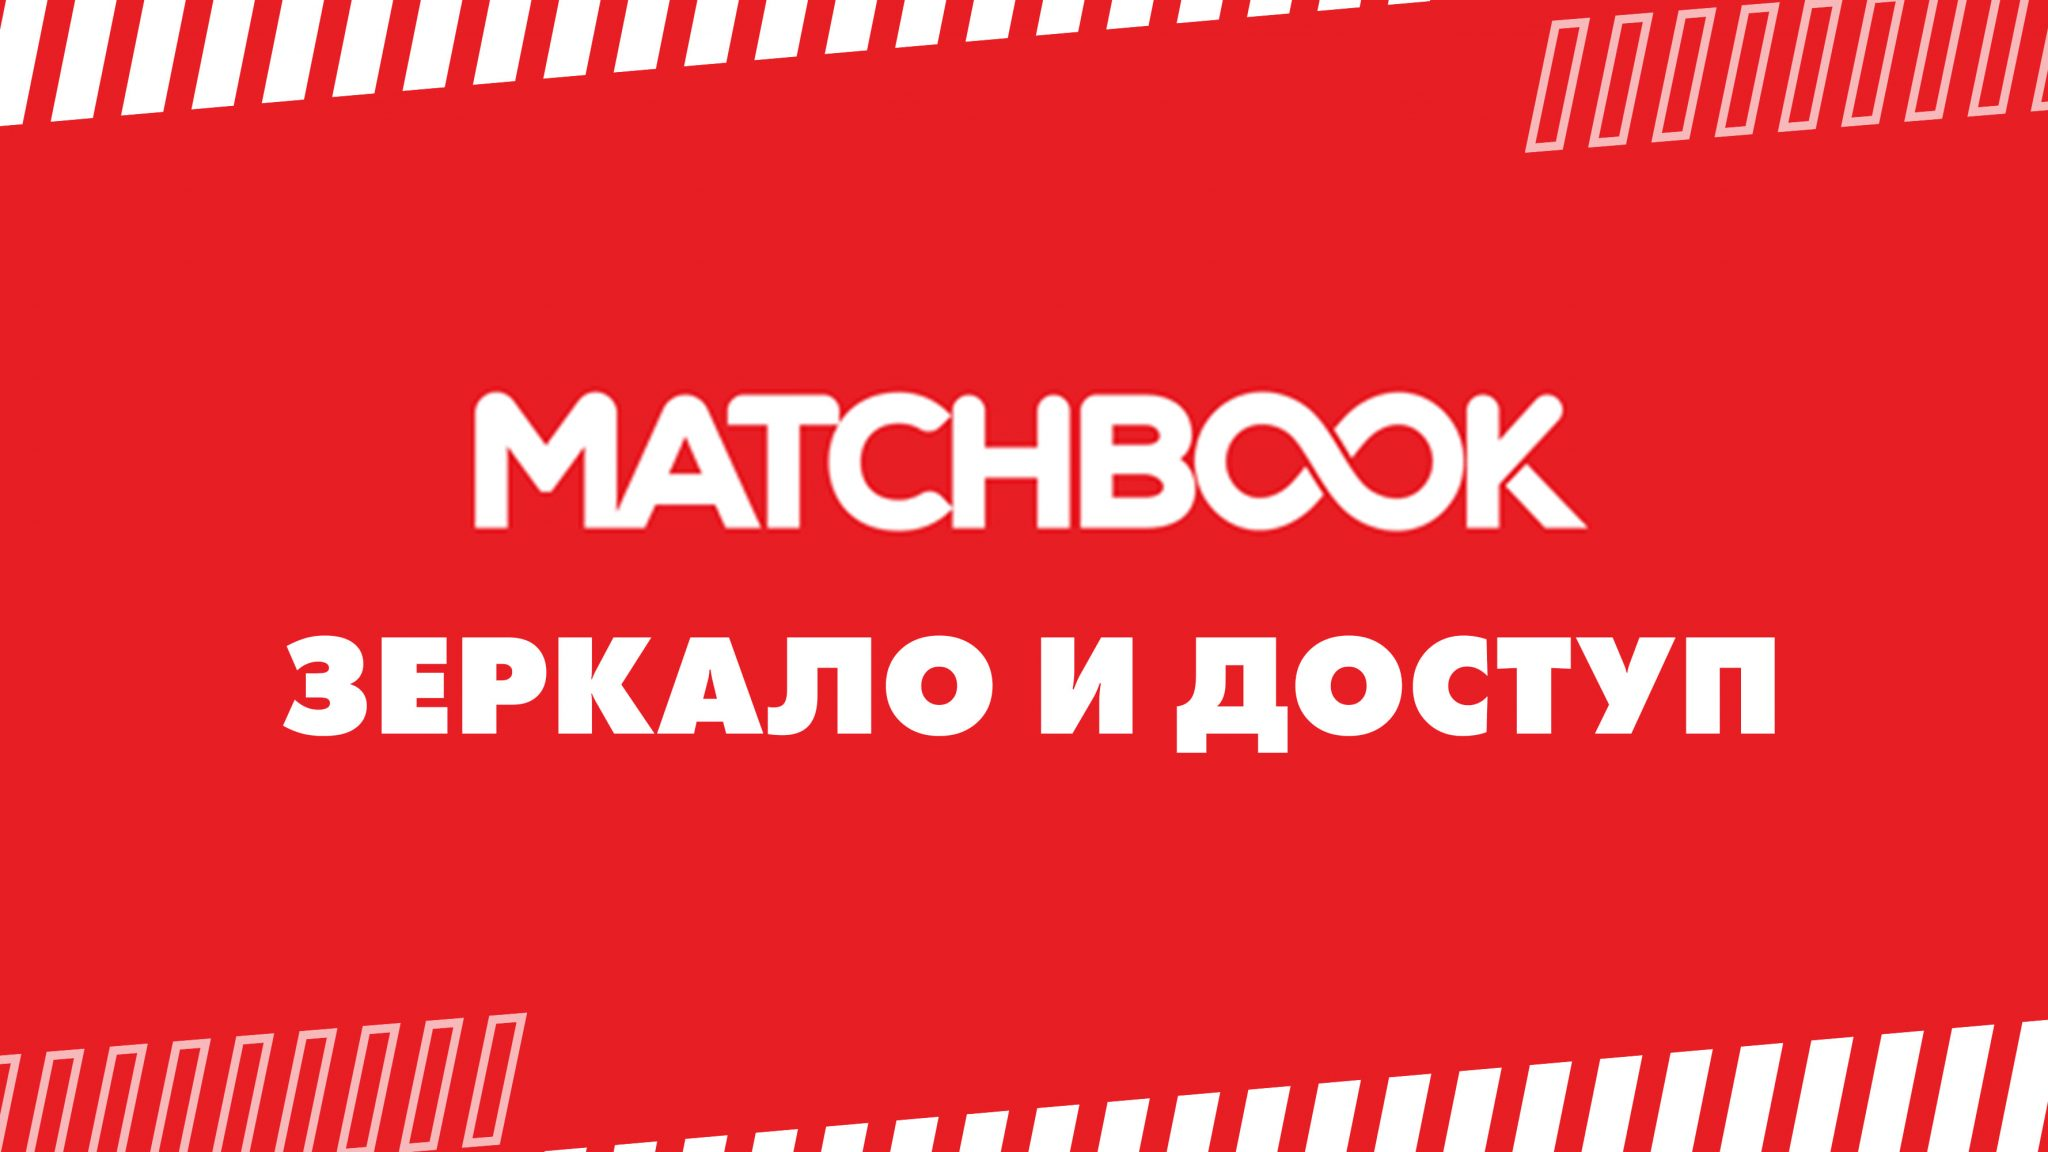 БК Matchbook зеркало и доступ к сайту